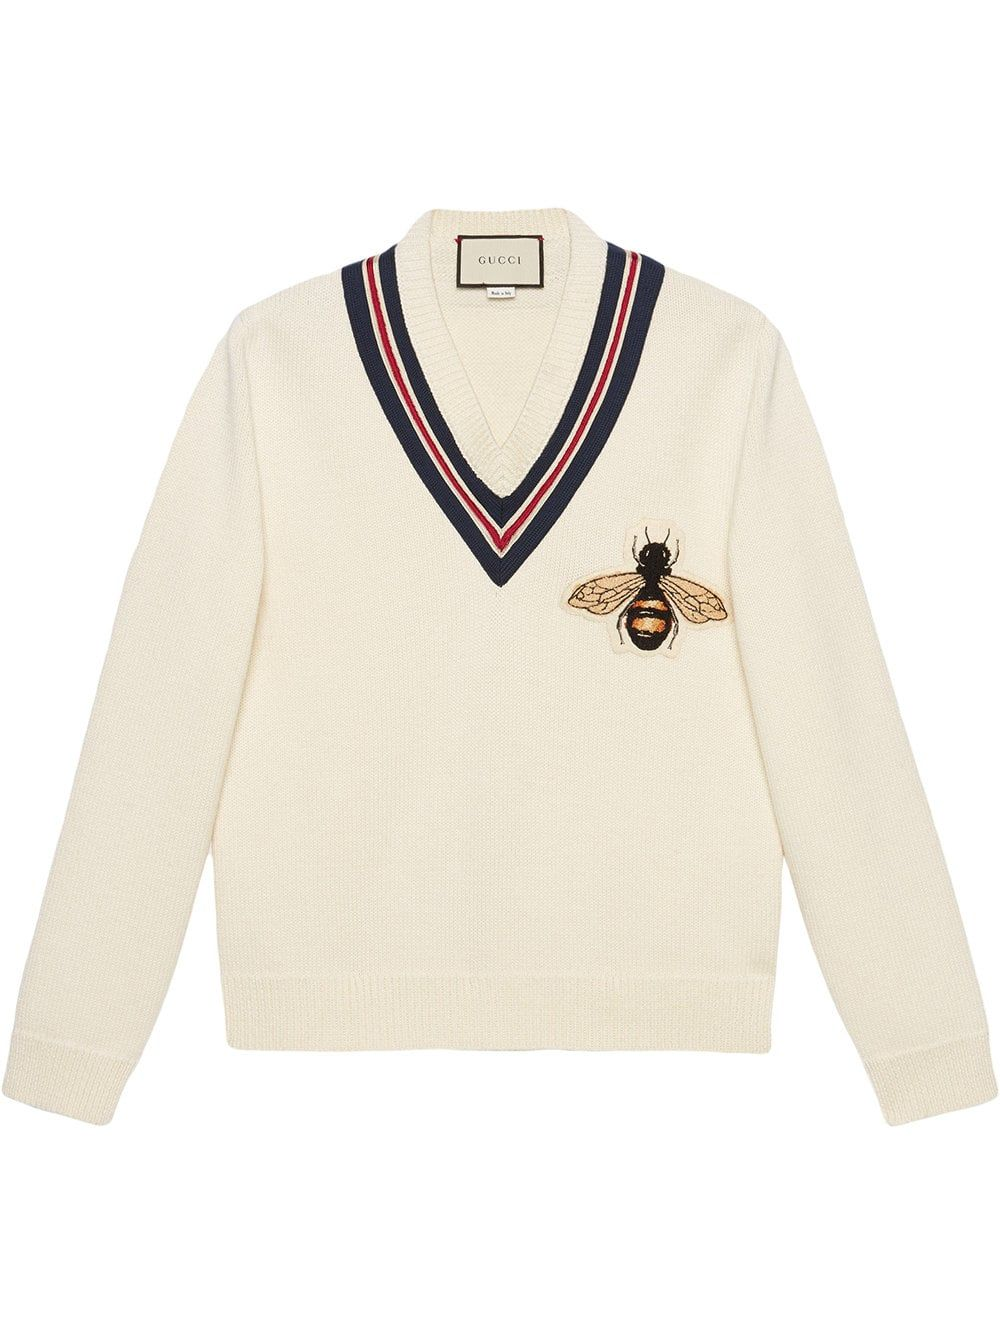 0fc2a07bde2 Gucci Wool Sweater With Bee Appliqué in 2019